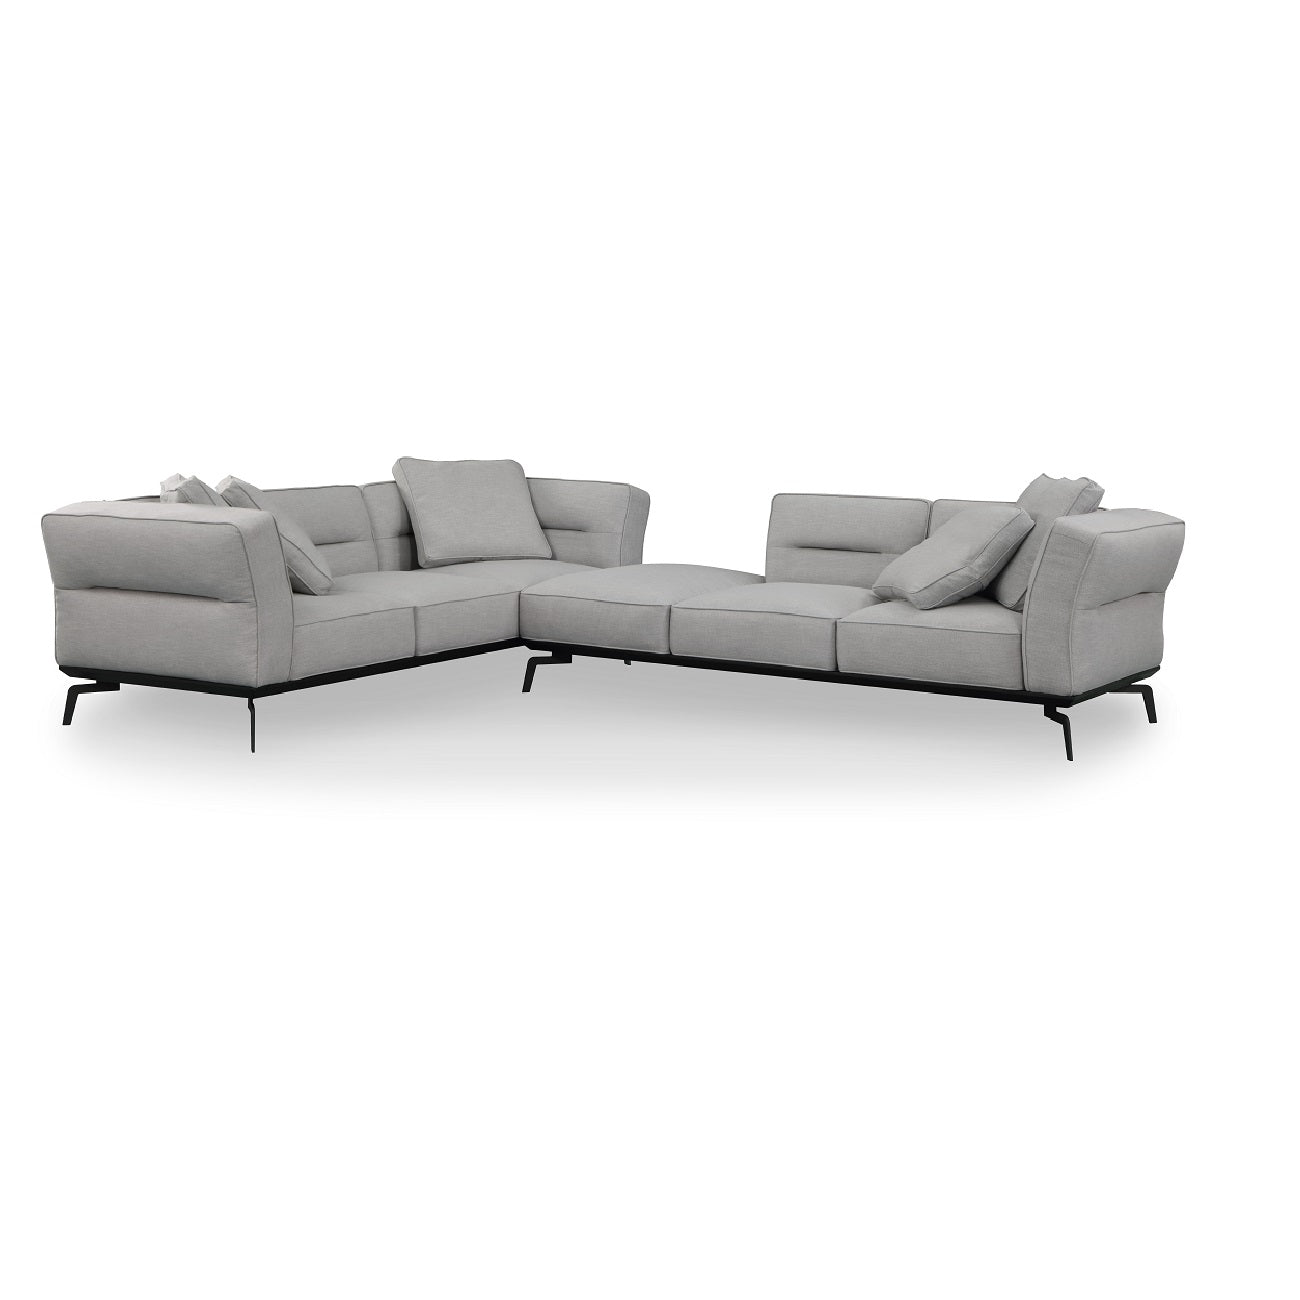 Cool Merino 2 Piece Sectional Furniture Agency Bralicious Painted Fabric Chair Ideas Braliciousco